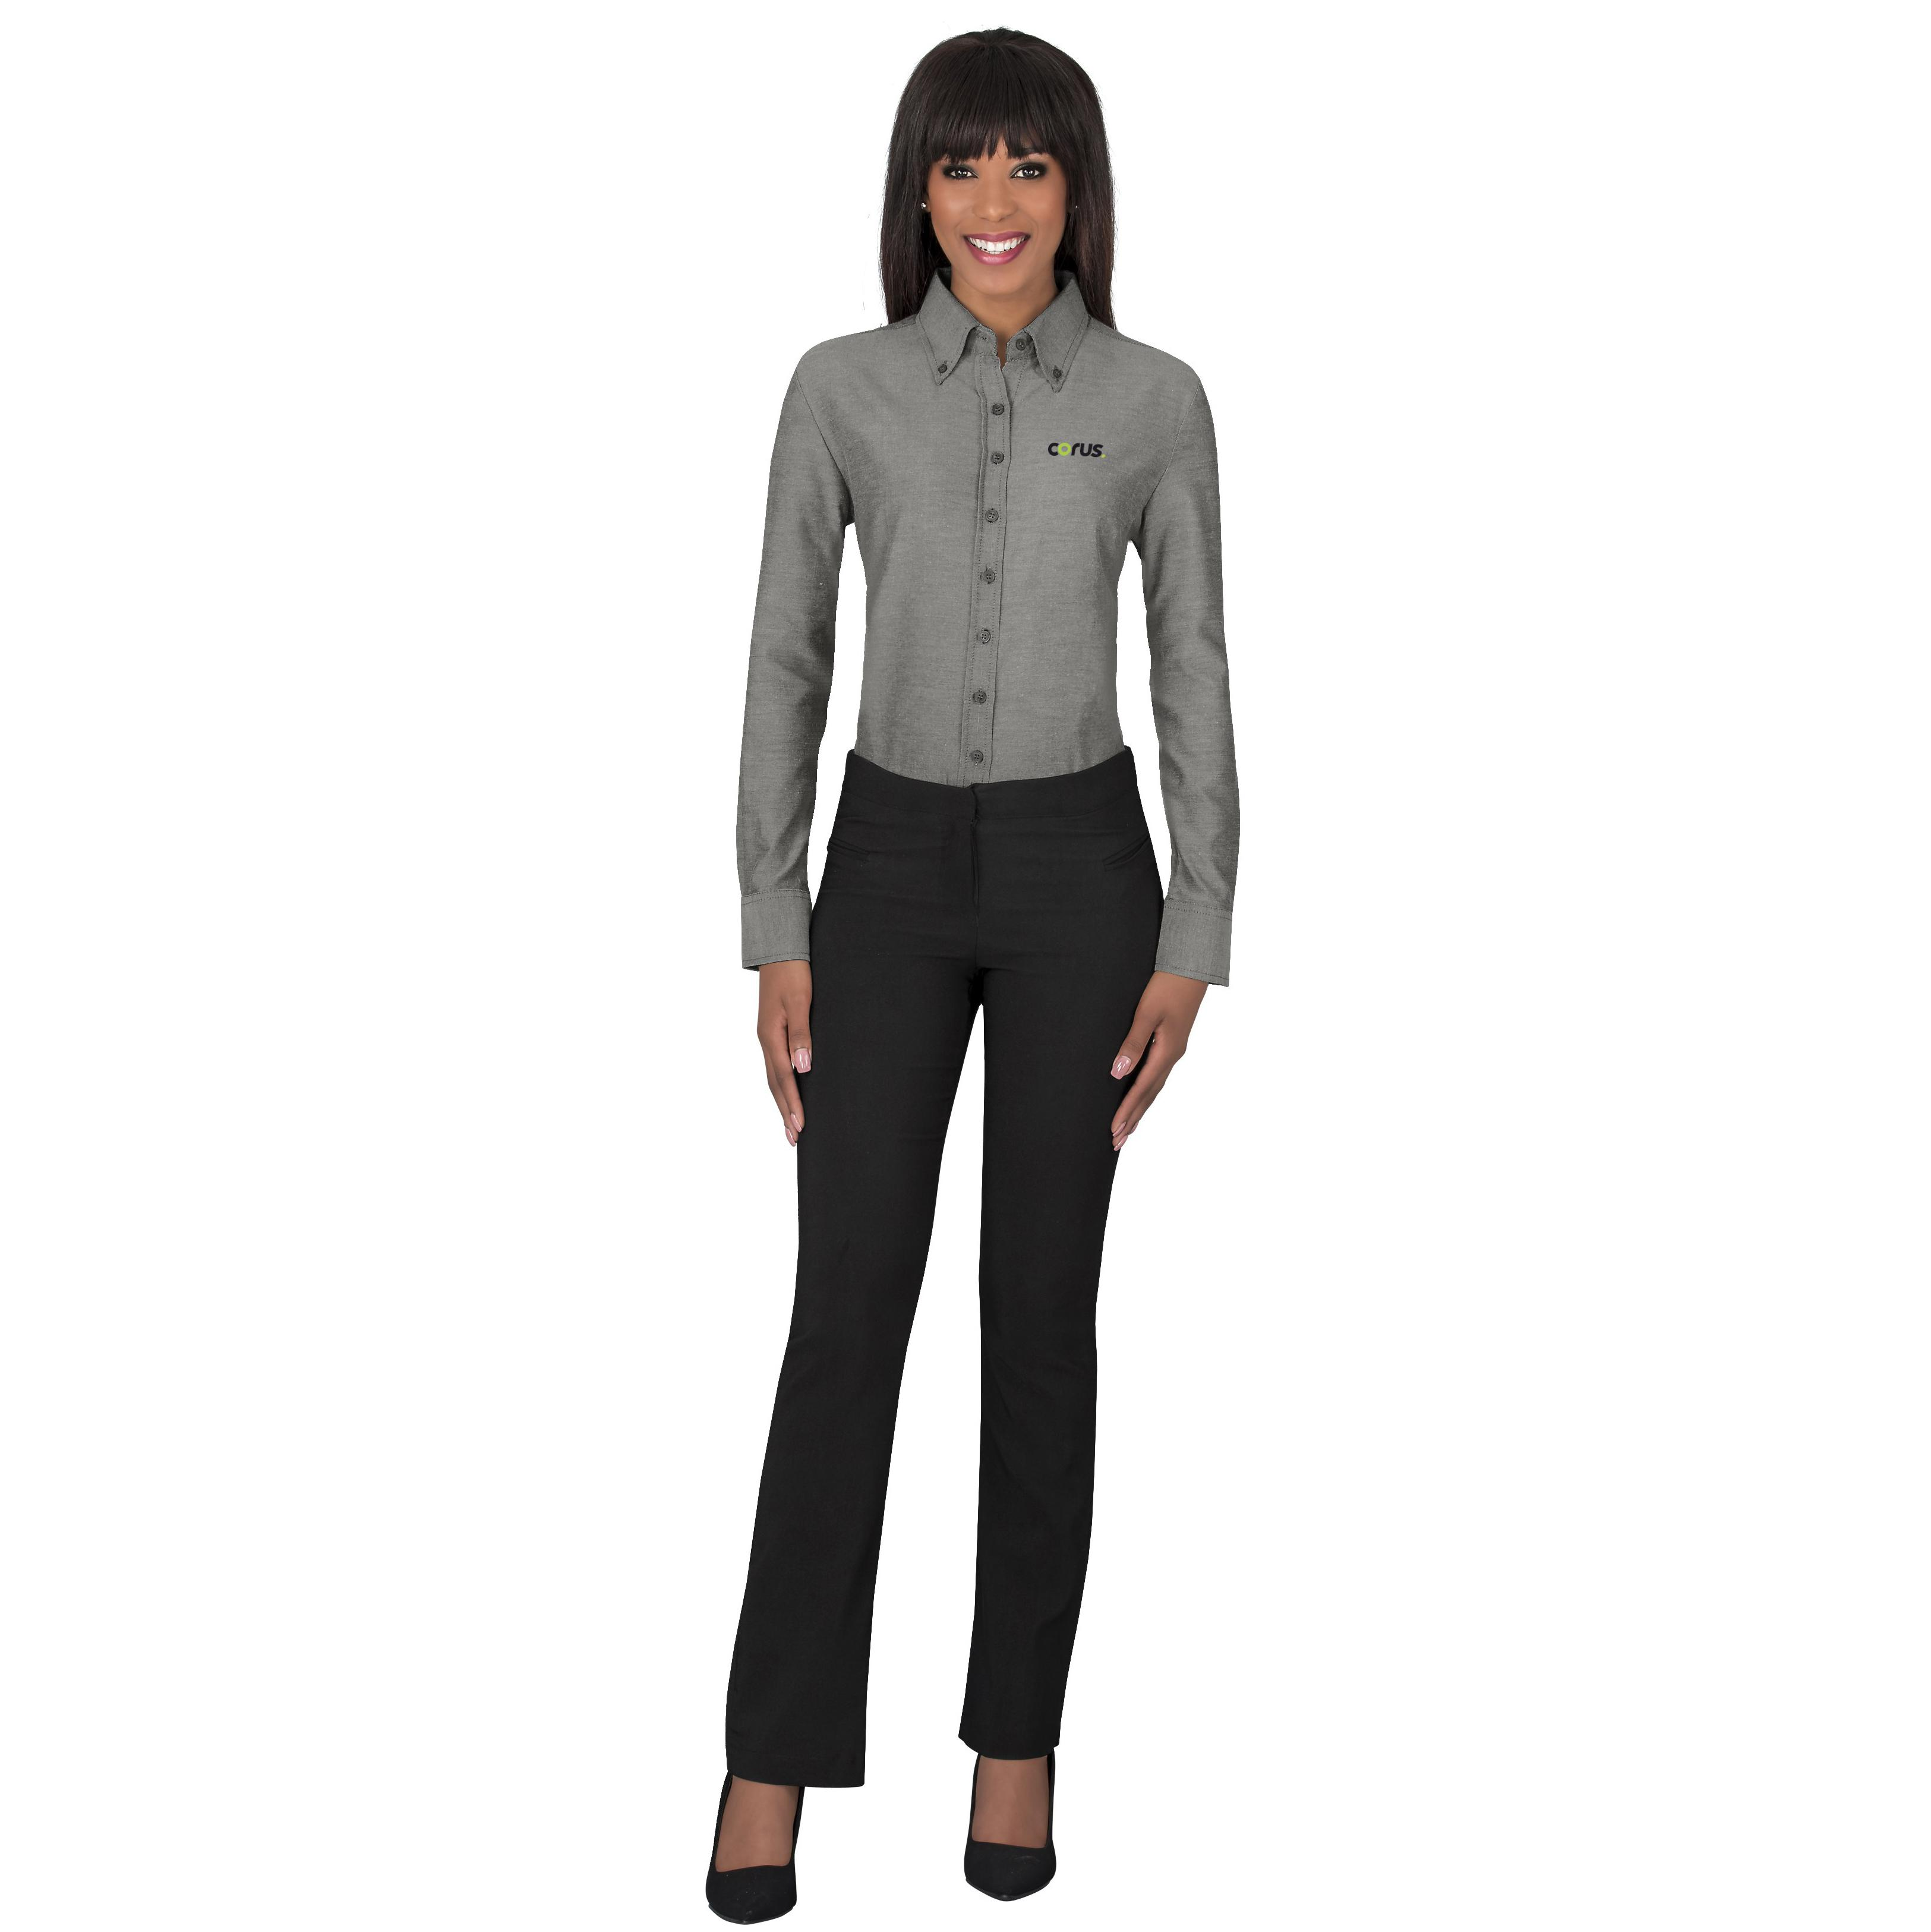 Ladies Long Sleeve Oxford Shirt - Charcoal Only